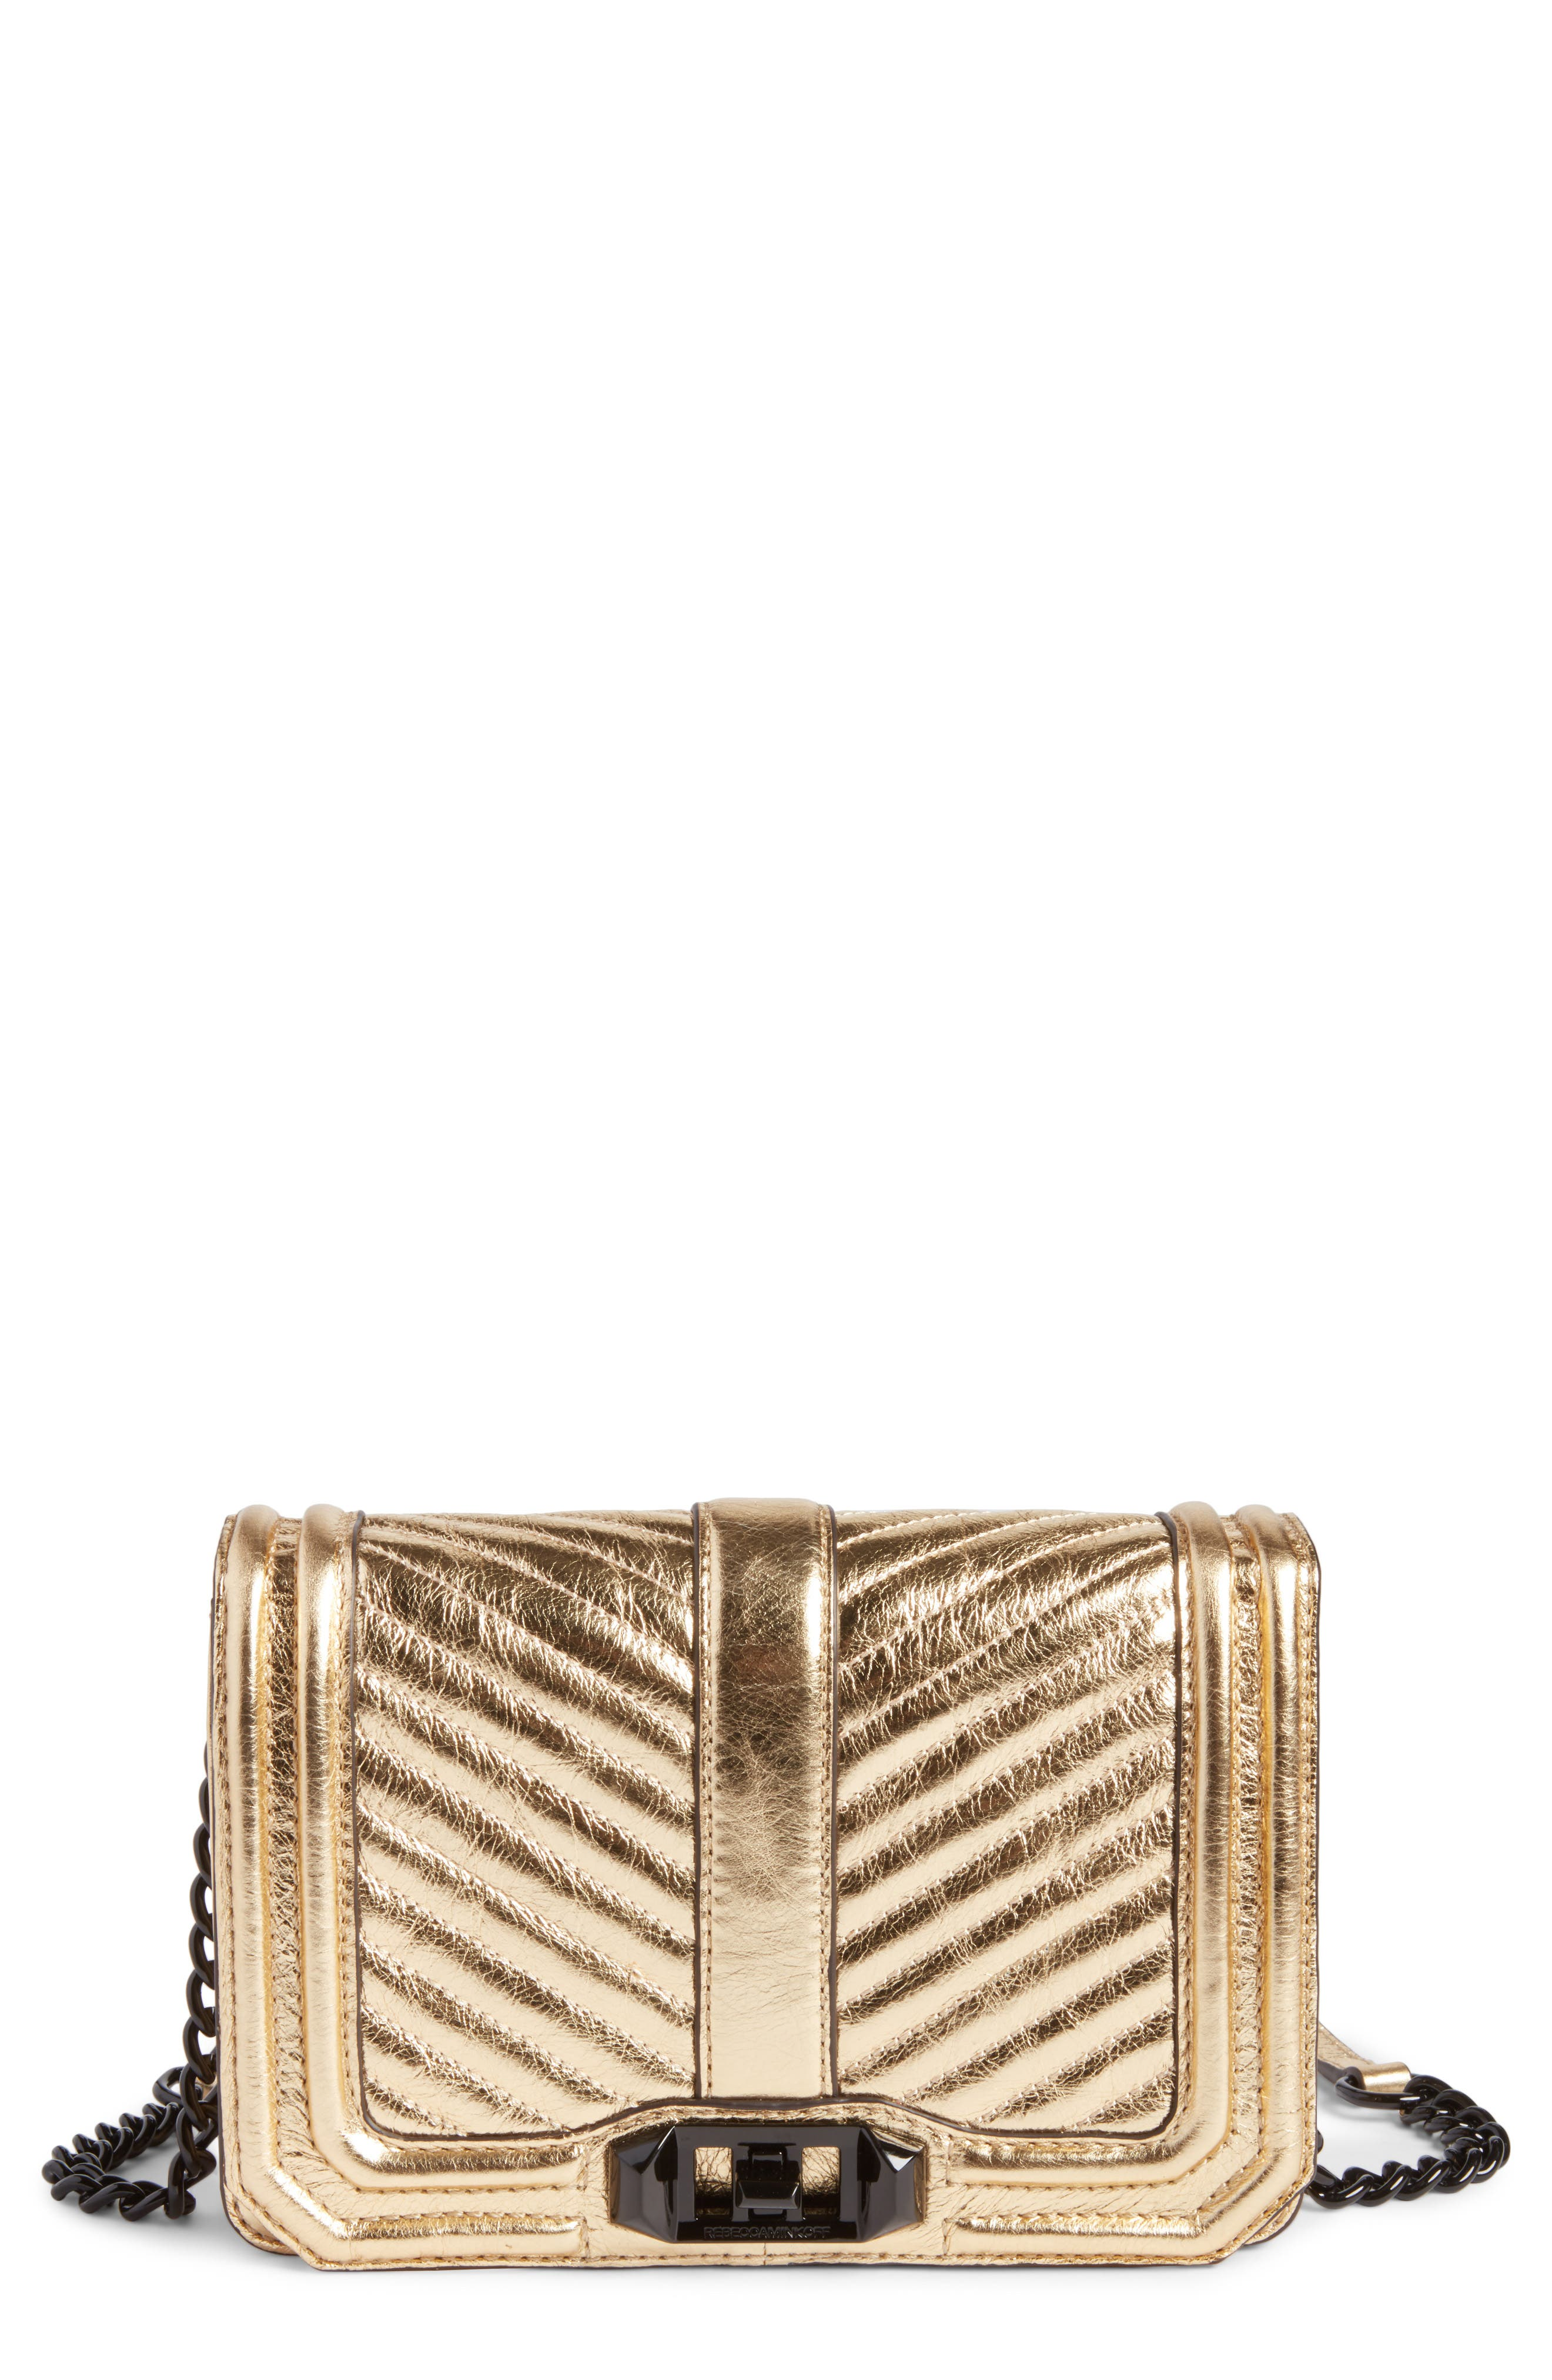 Small Love Metallic Leather Crossbody Bag,                             Main thumbnail 1, color,                             710